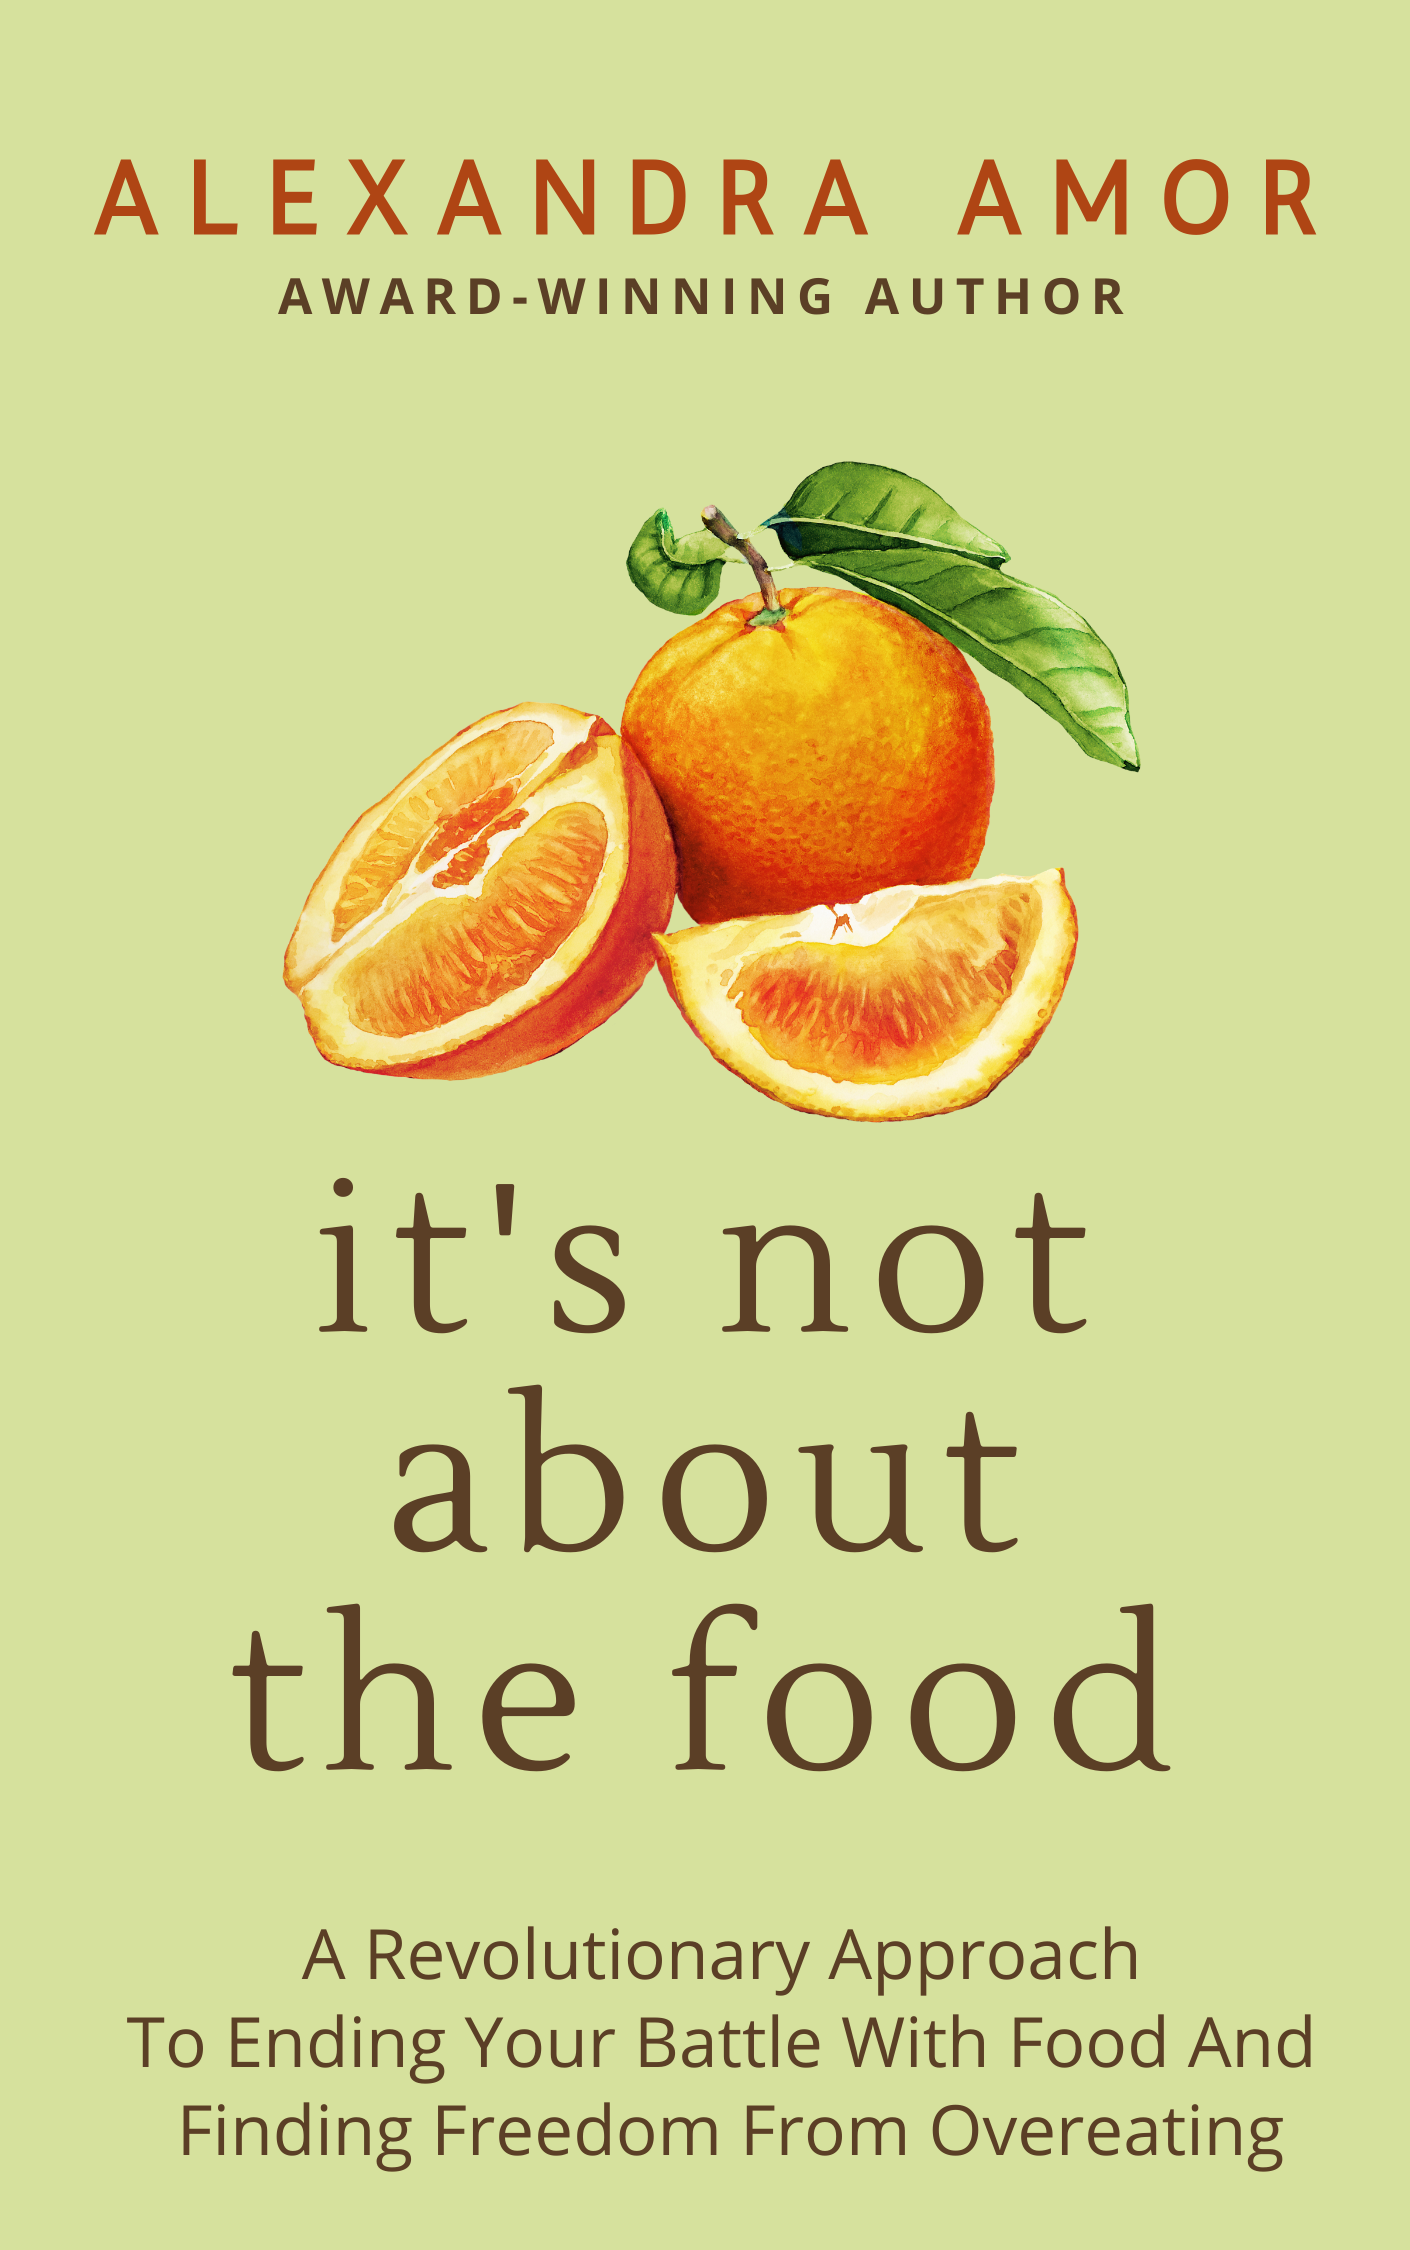 It's not about the food by Alexandra Amor